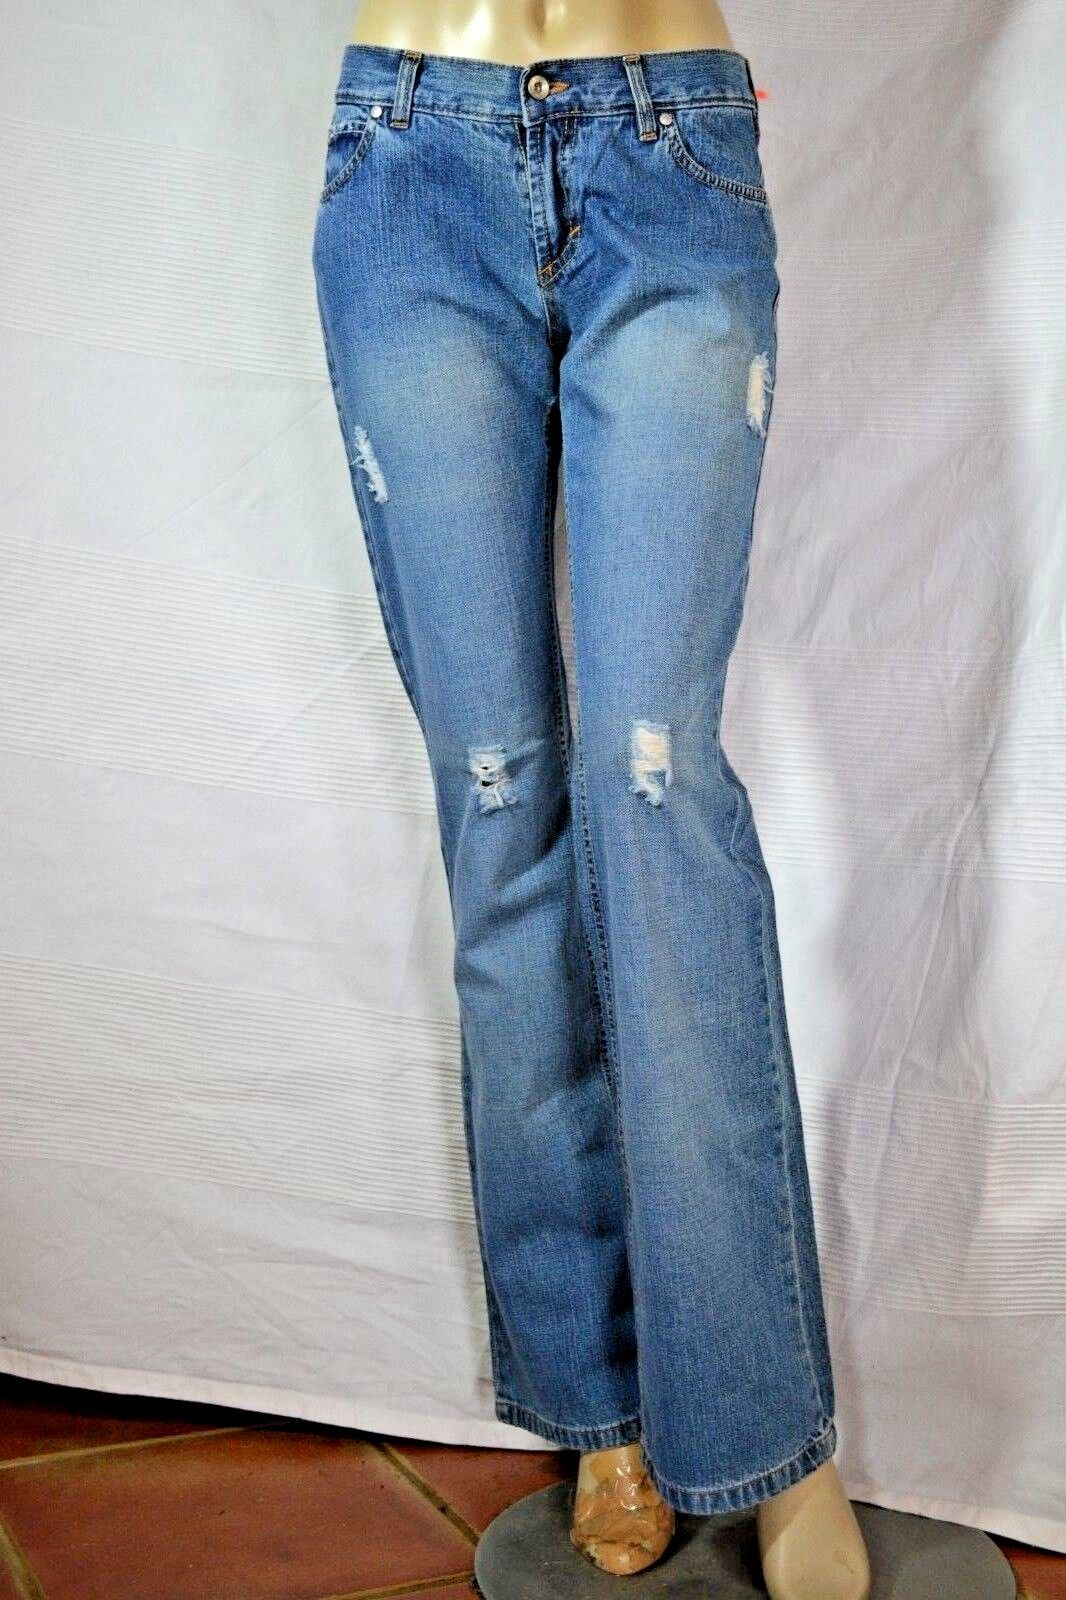 KENTE trousers destroyed JEANS Hose S 36 W28 neu  blue NEW tags blue